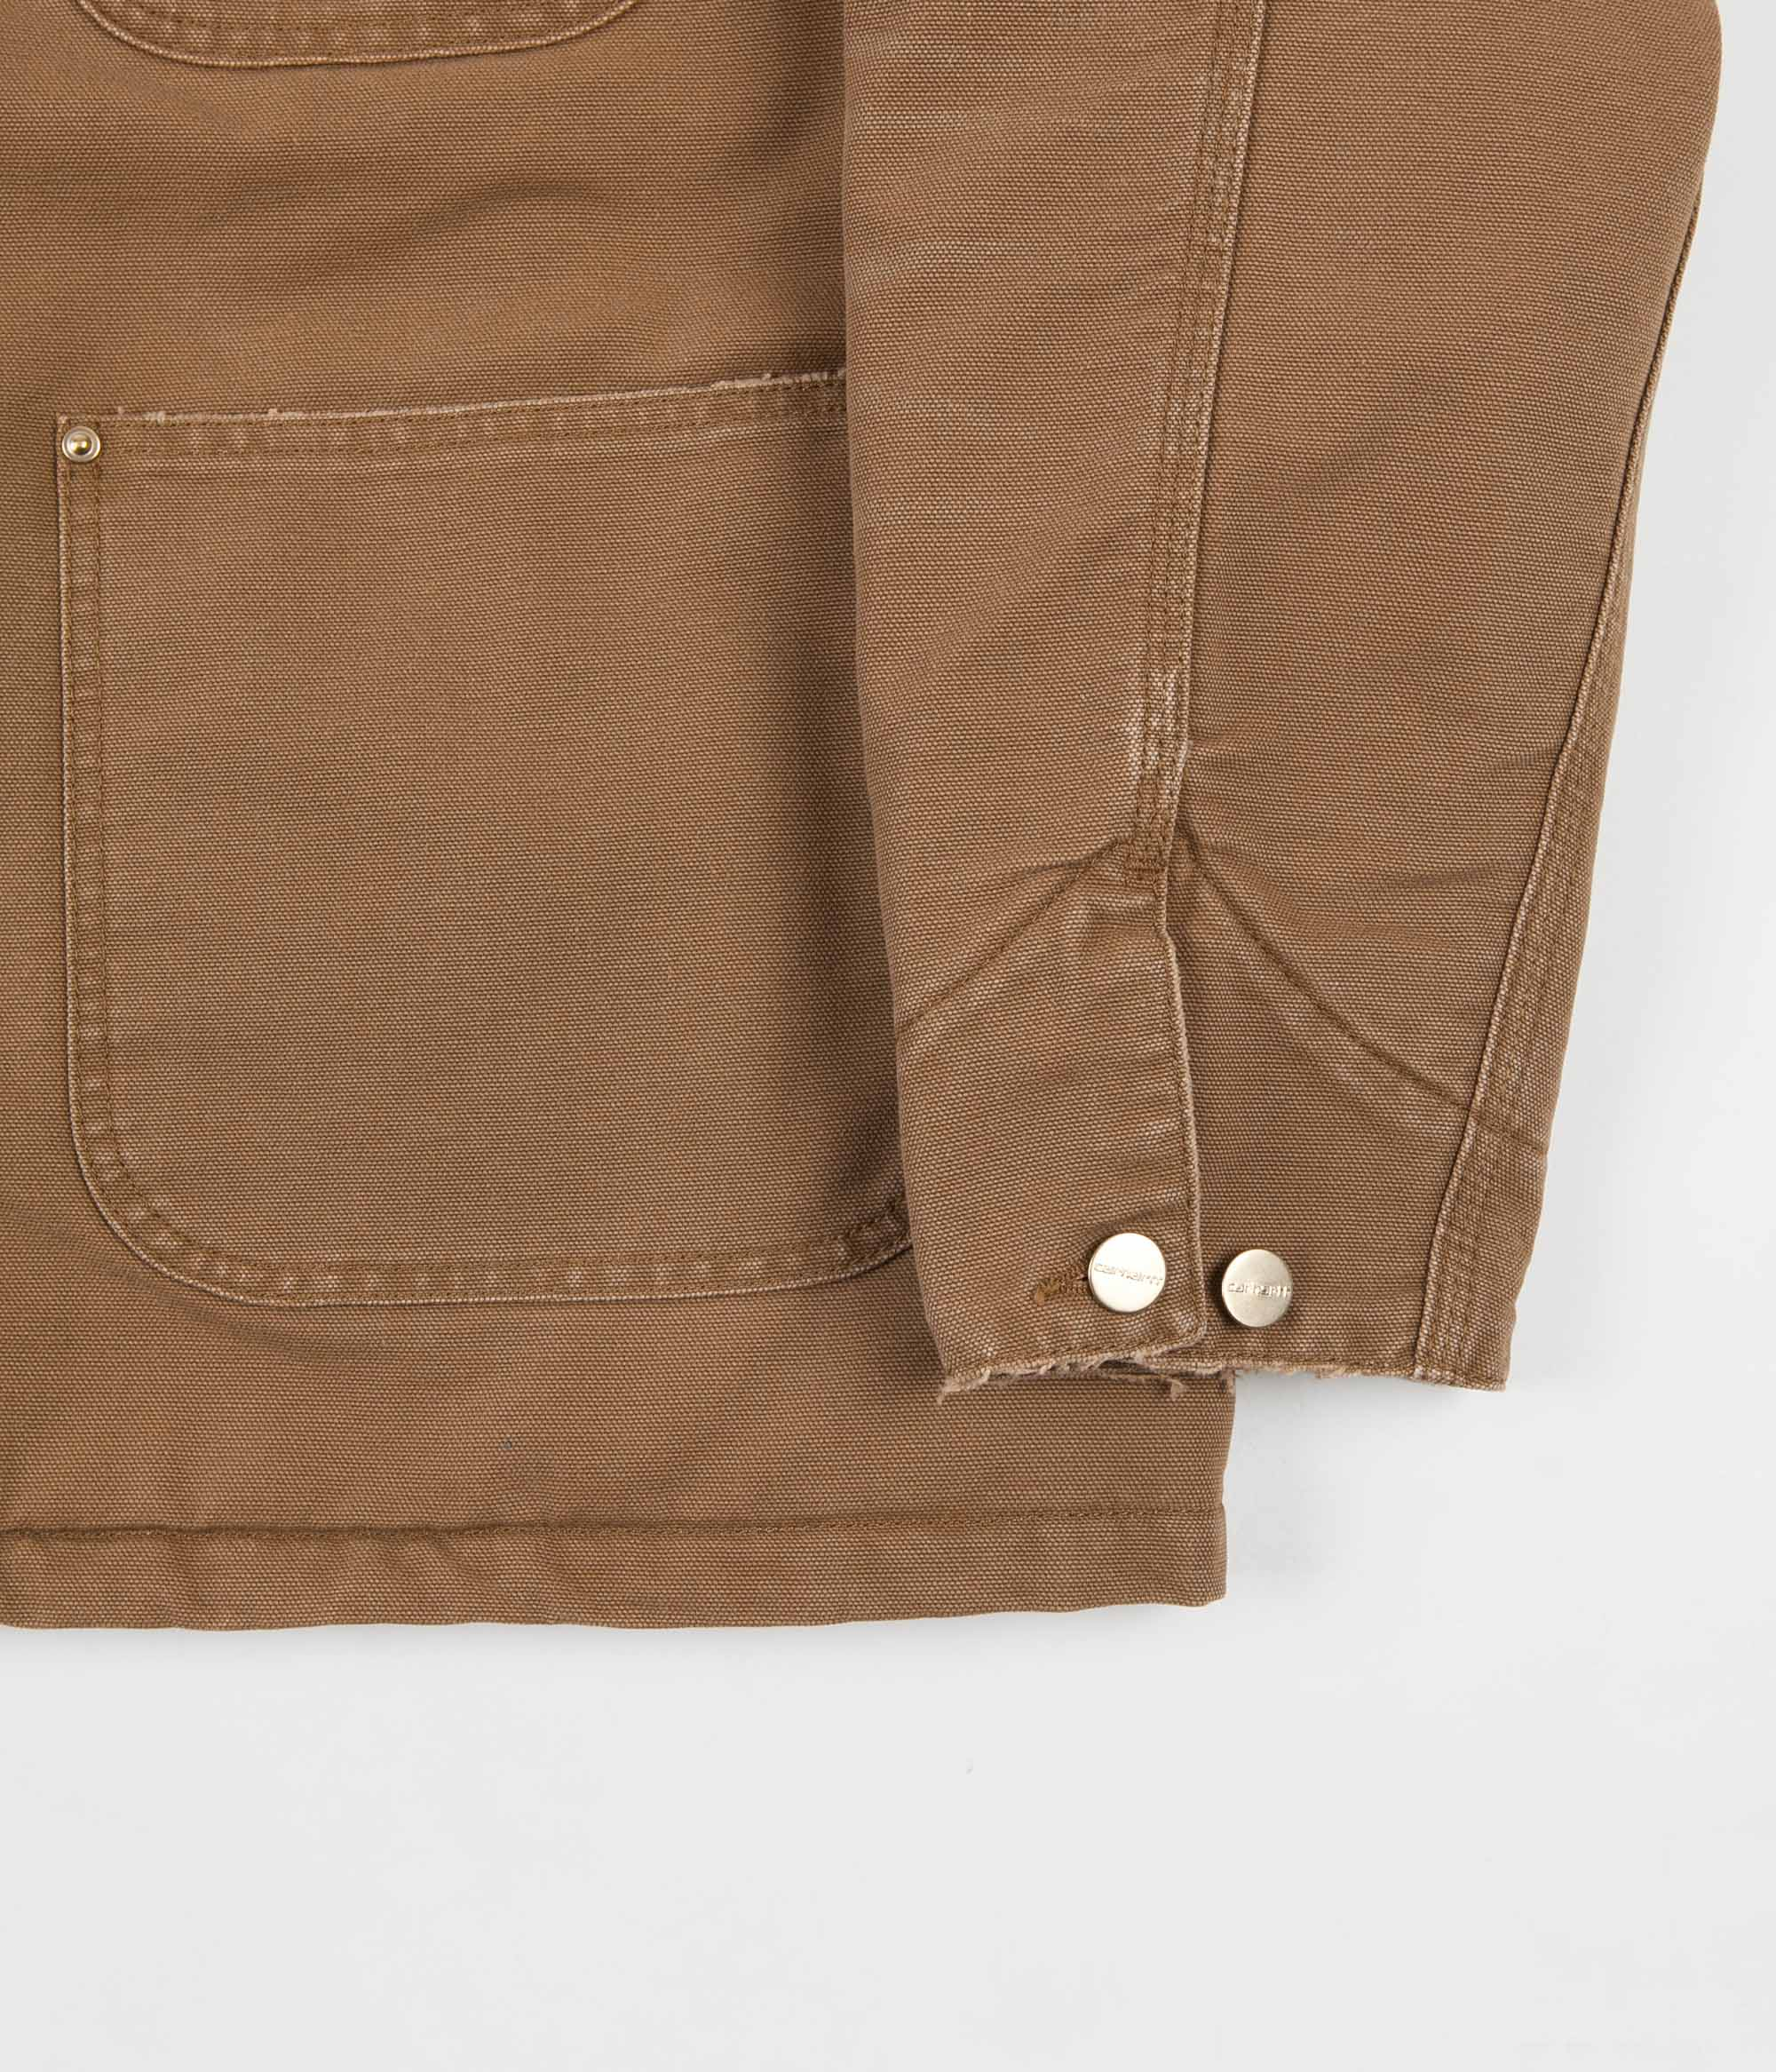 Carhartt OG Chore Coat - Hamilton Brown / Black